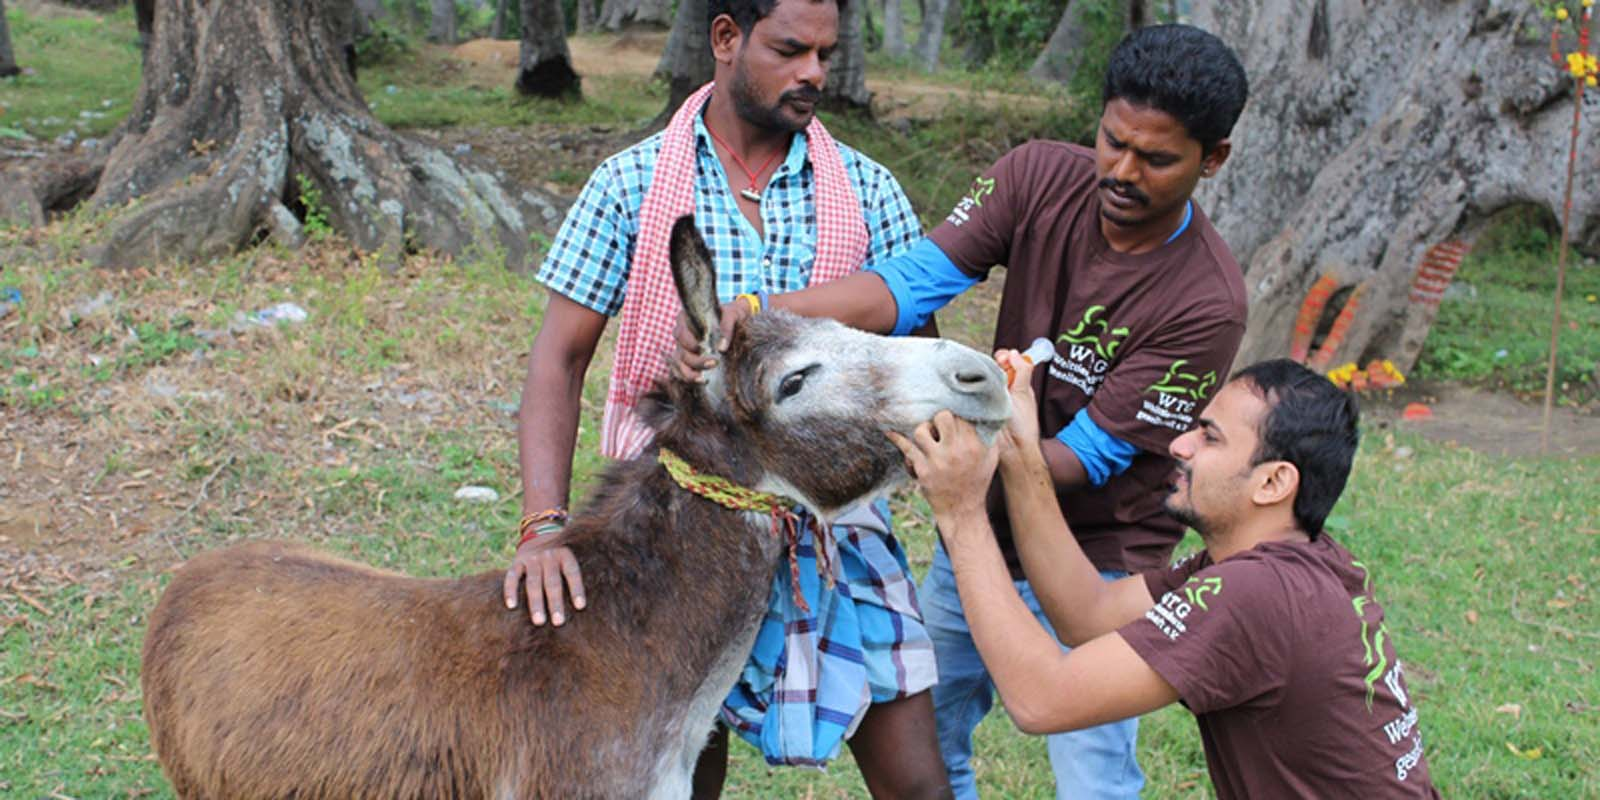 Vets treating a donkey during a mobile clinic